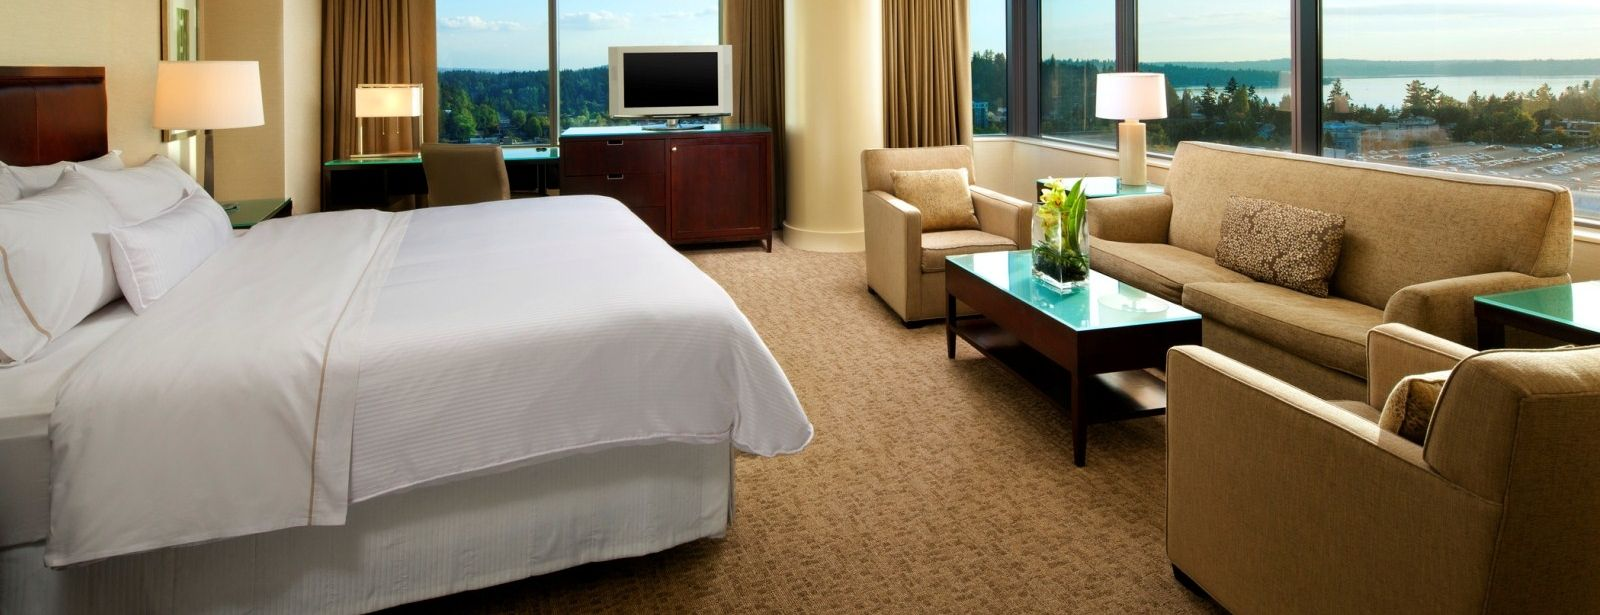 The Westin Bellevue Hotel - Corner Studio Suites